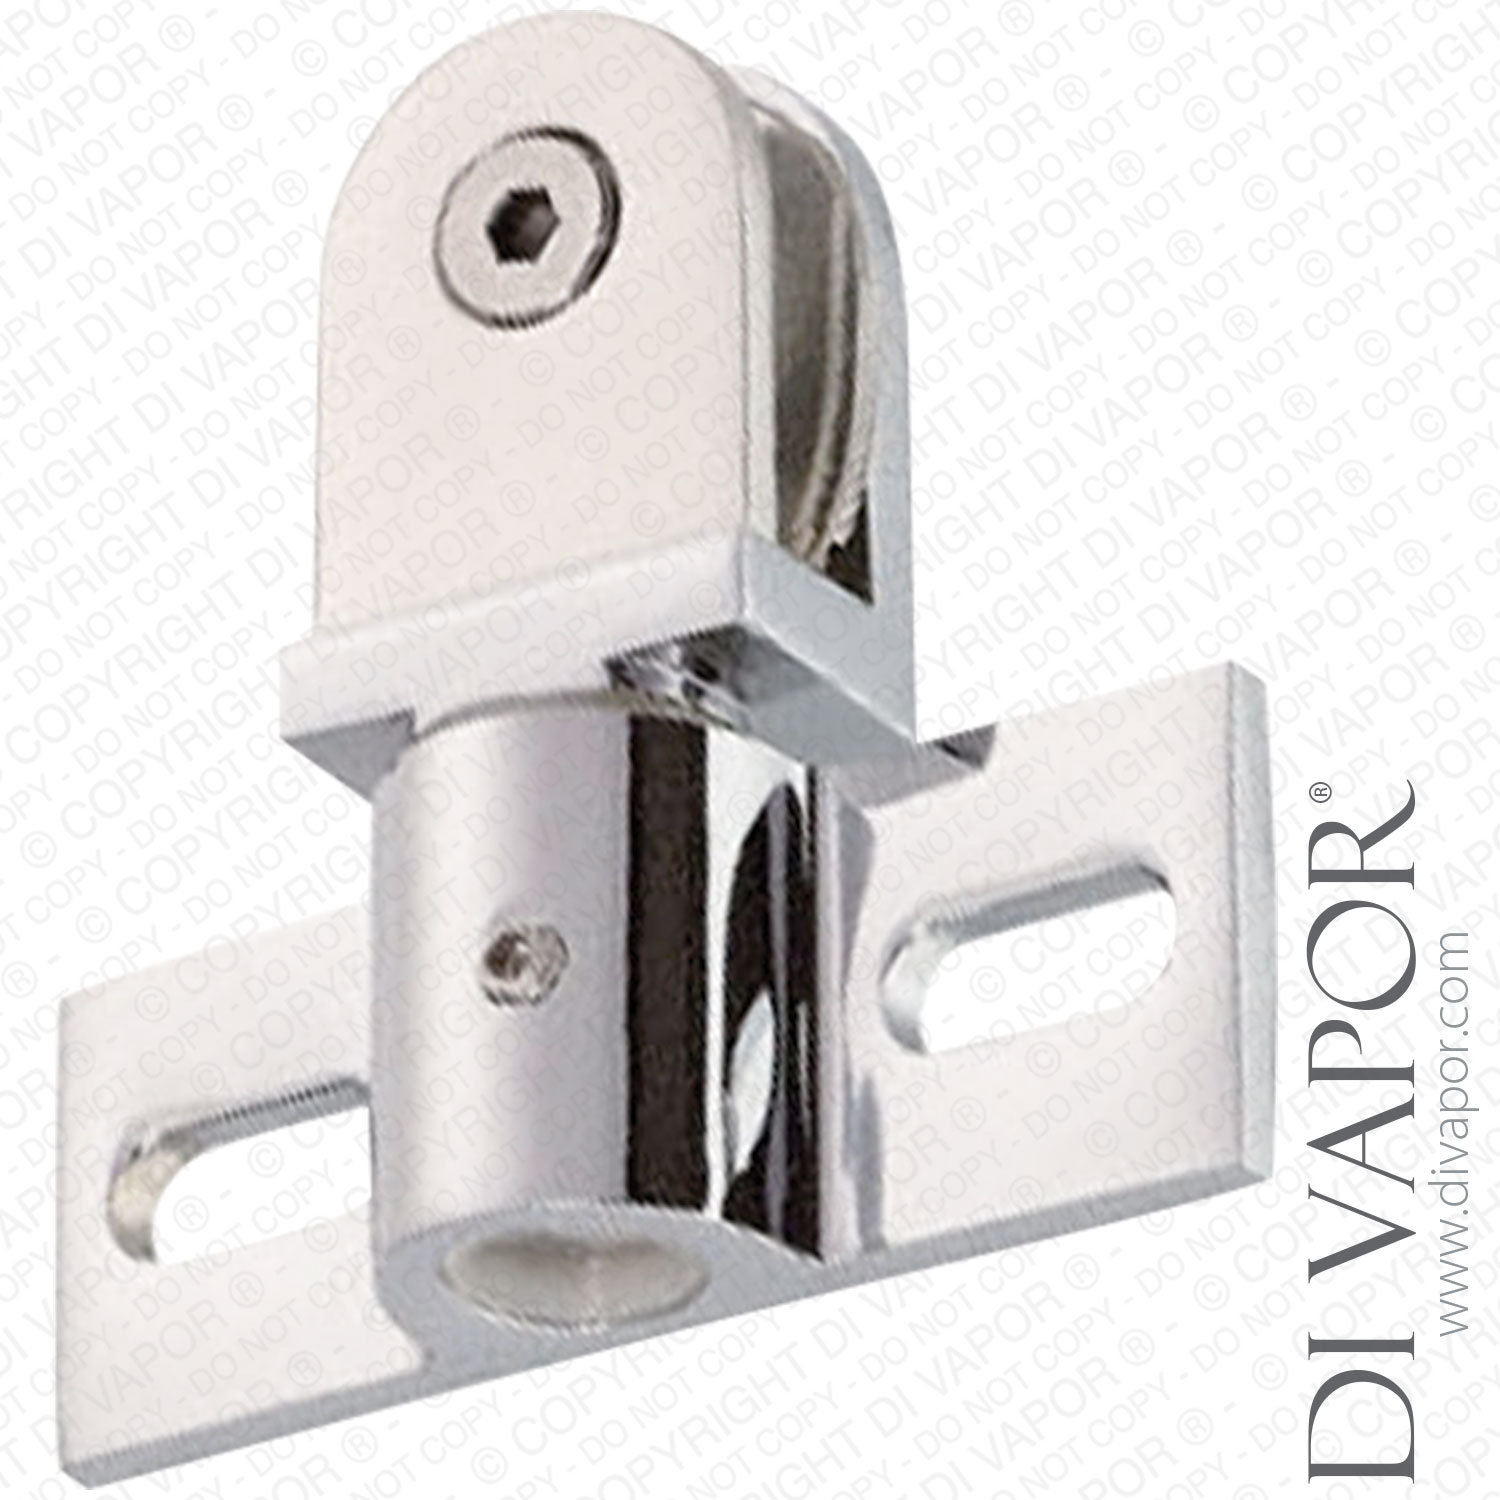 Di Vapor R Glass Shower Door Pivot Hinge Plastic Pin